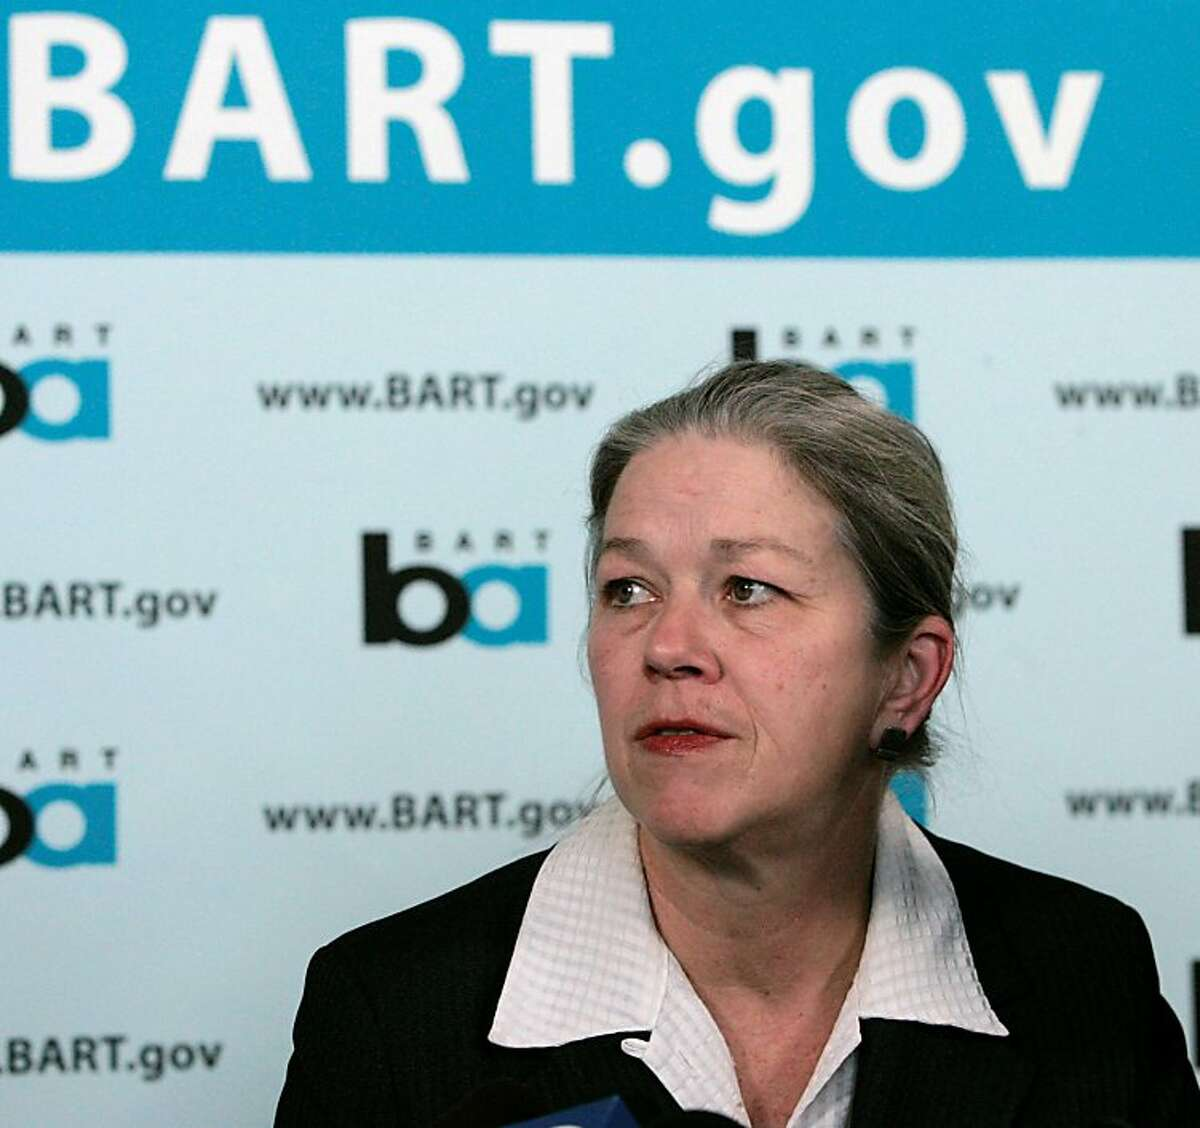 BART General Manager Dorothy Dugger fields questions from the media on the shooting death of Oscar Grant, at the BART headquarters in Oakland, Calif., Monday, Jan. 12, 2009. Grant was shot and killed by a BART police officer after an altercation on a train station platform in Oakland on New Year's Day. (AP Photo/Marcio Jose Sanchez)